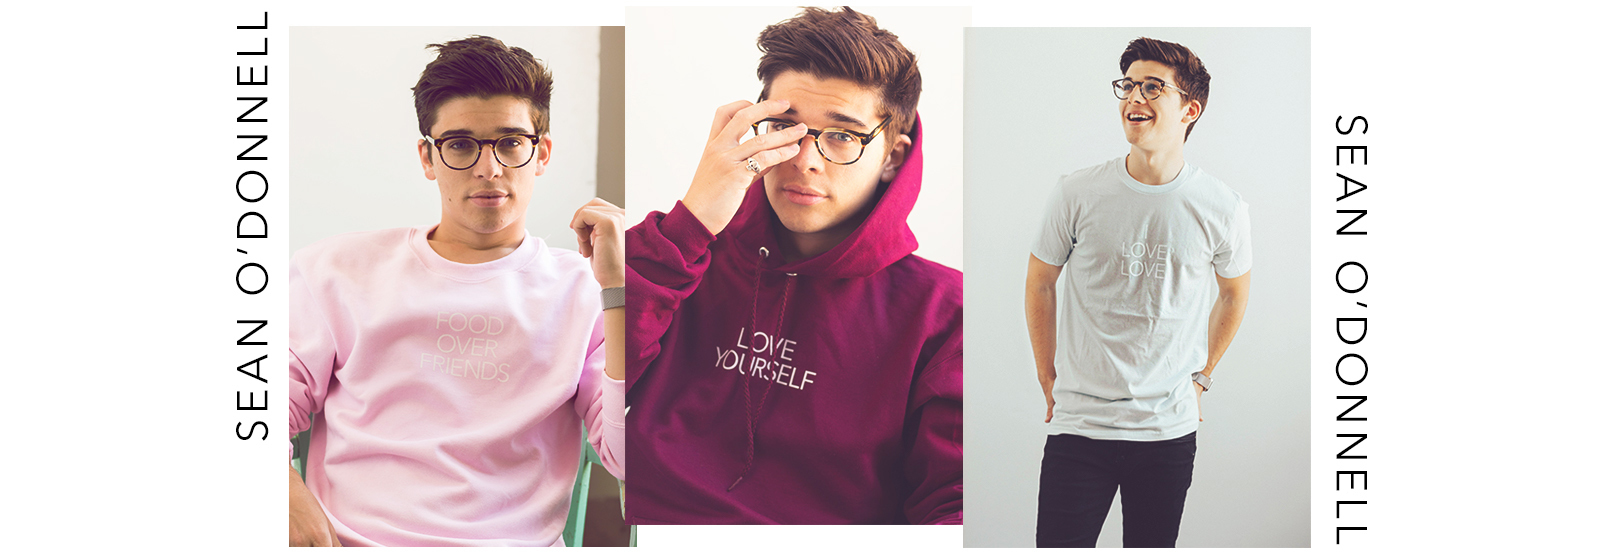 Sean O'Donnell Official Store Store